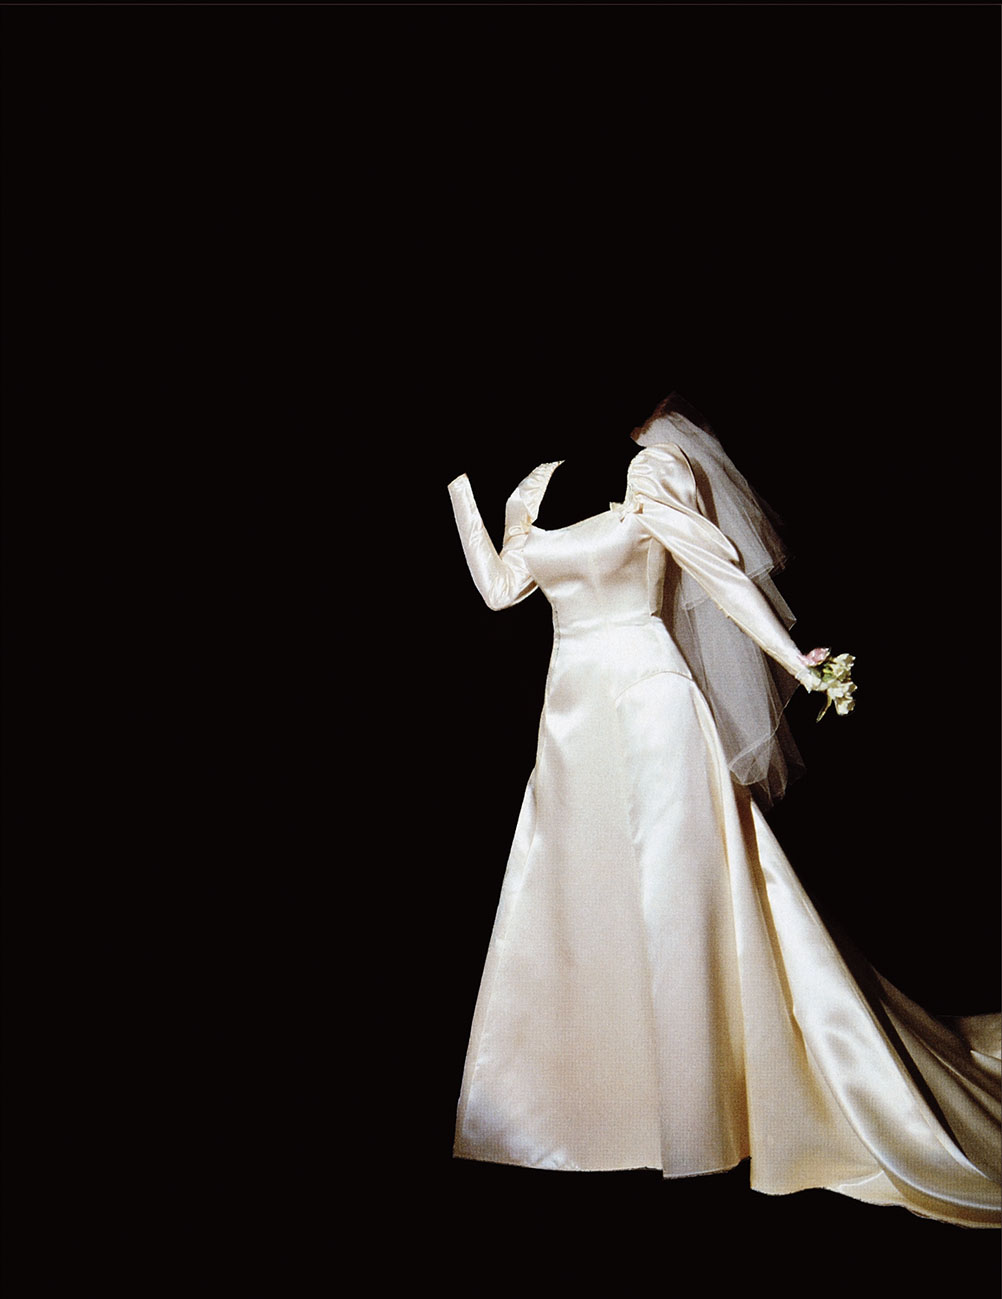 Sarah Charlesworth, Objects of Desire 1: Bride, 1983-1984, cibachrome with lacquered wood frame, 106.7 x 81.3 cm Courtesy Maccarone and estate of the artist